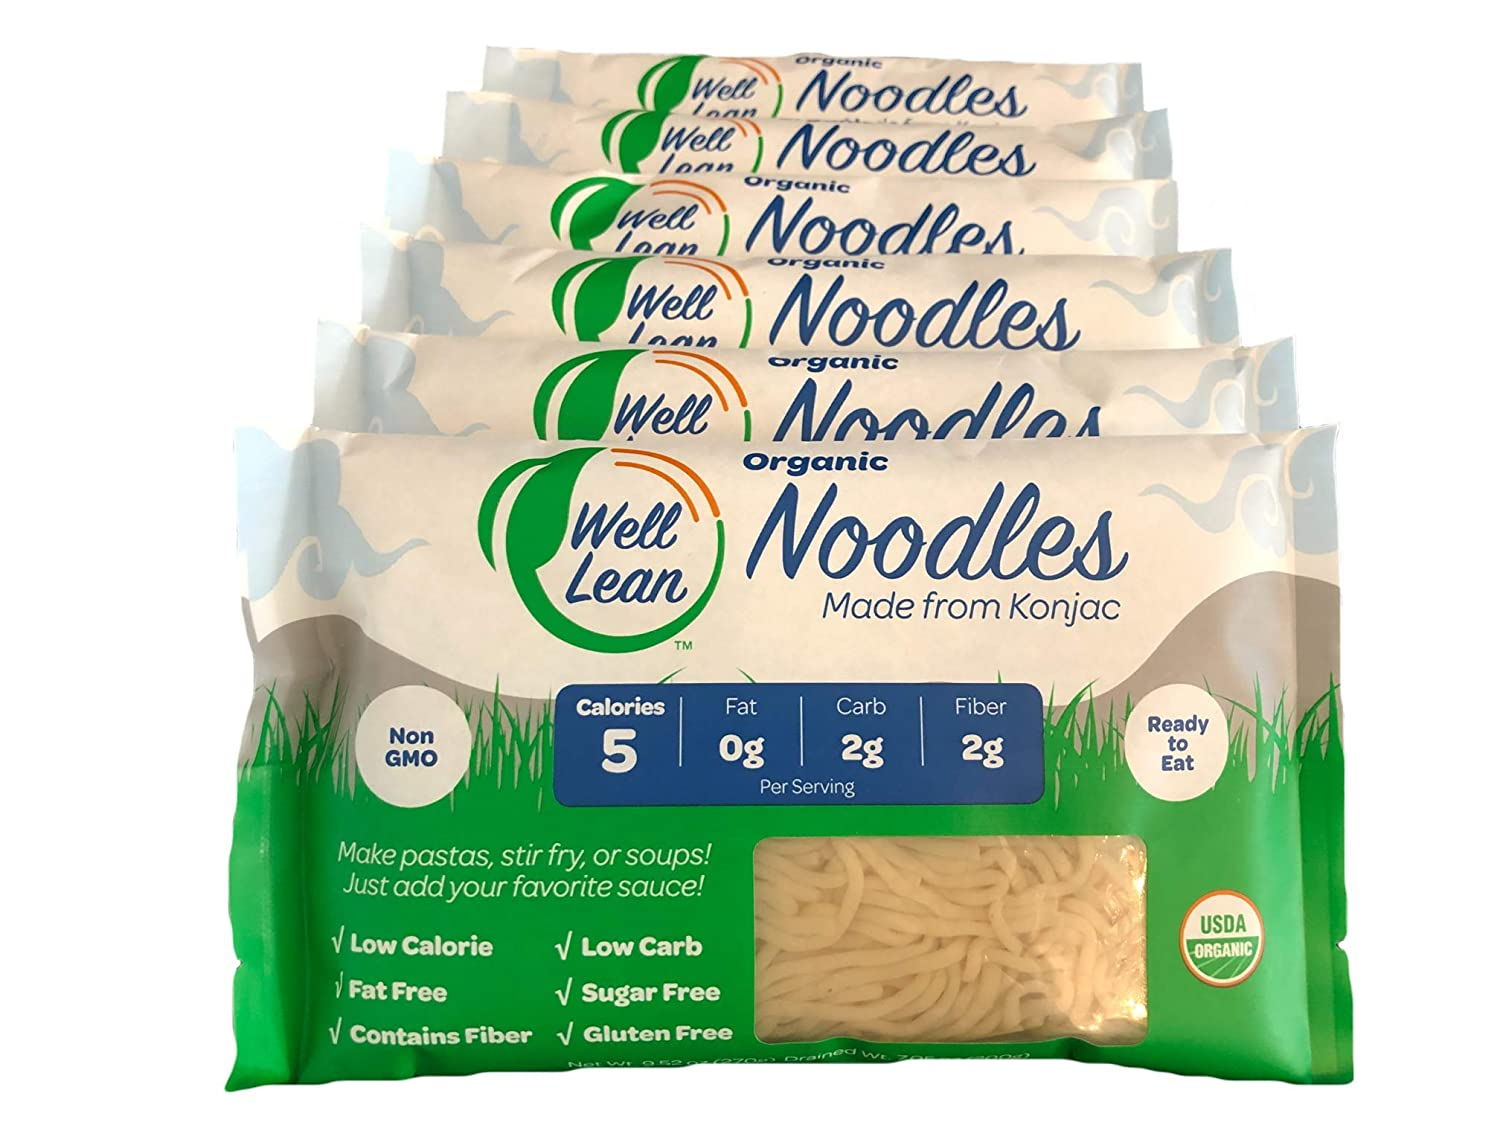 Organic Well Lean Noodles (6 PACK/57.1 oz) - Premium Shirataki [Ready to Eat, No Boiling, ODOR FREE, Non-GMO]